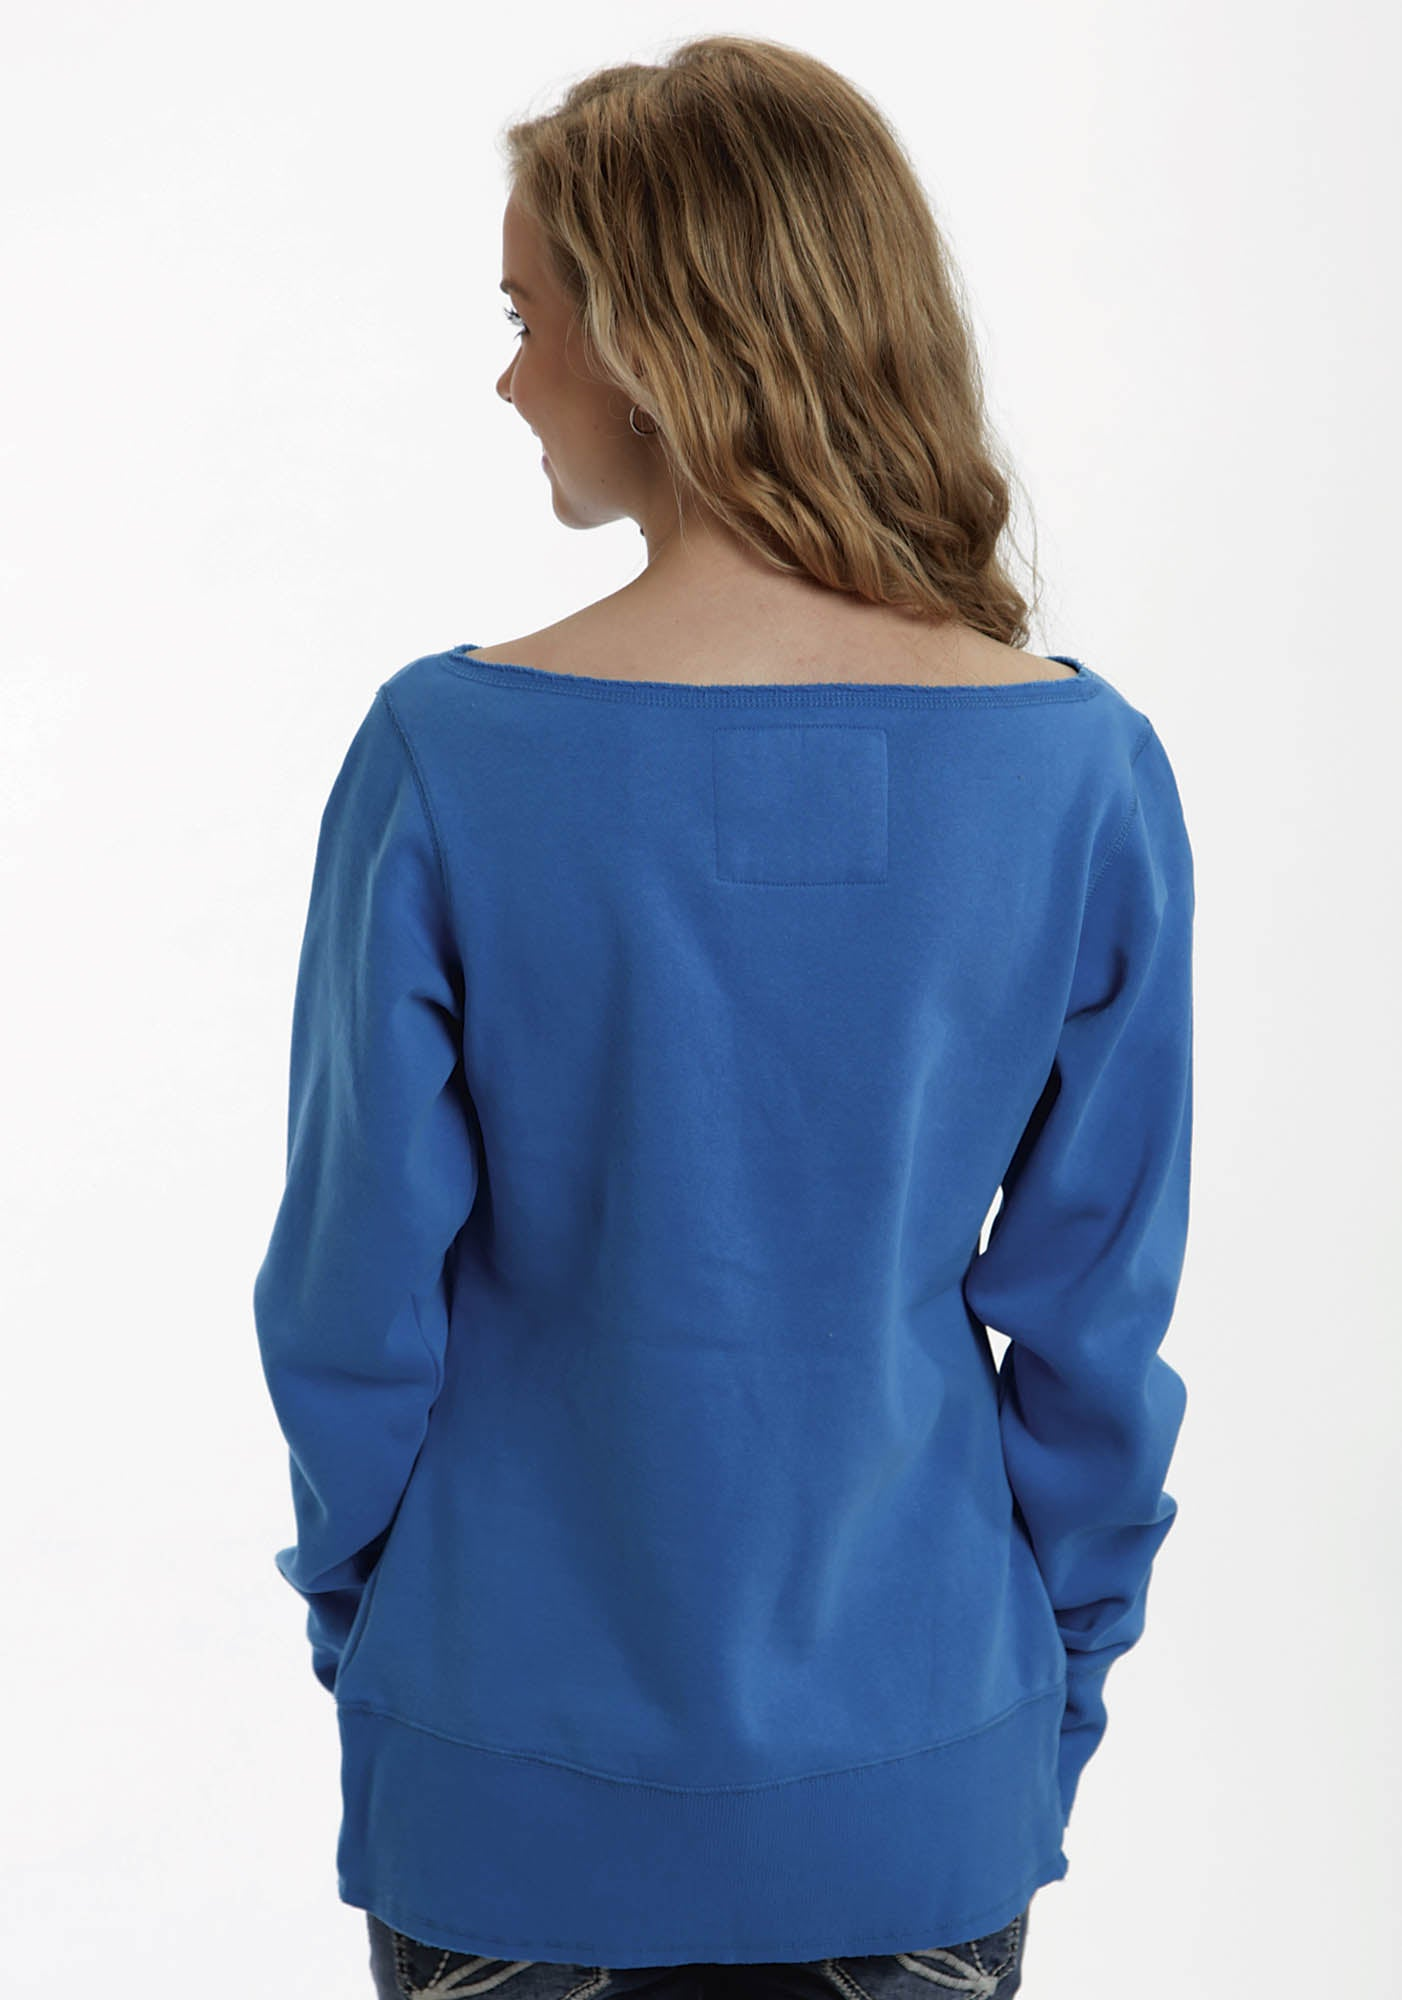 ROPER WOMENS BLUE 98005 W VINTAGE RAW EDGE PULL-OVER  LONG SLEEVE